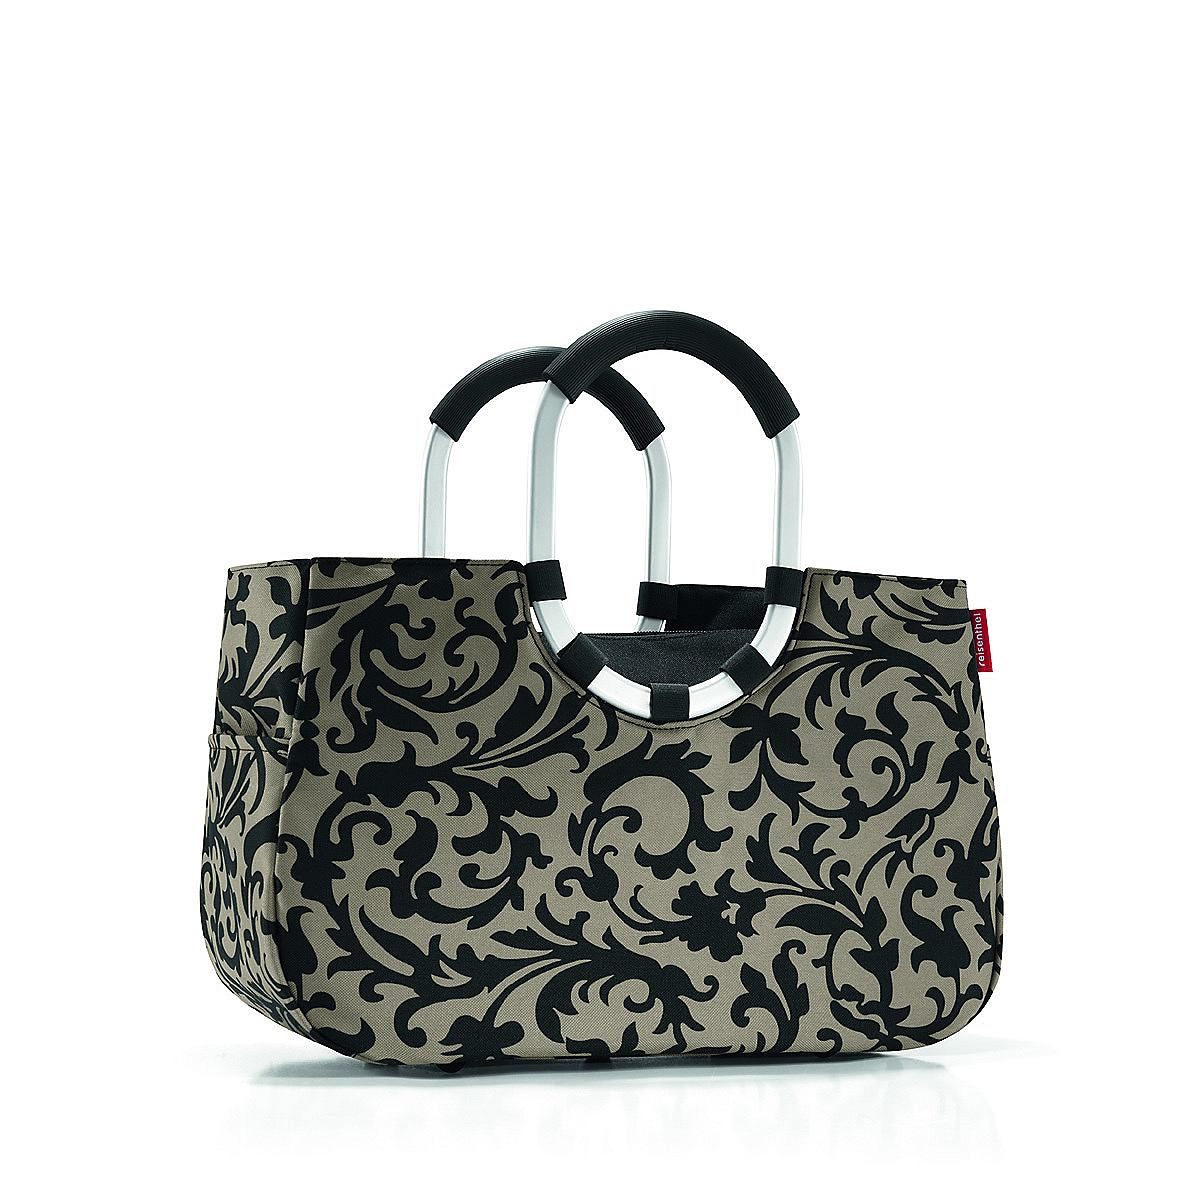 REISENTHEL® Loopshopper M baroque taupe »REISENTHEL® Loopshopper M baroque taupe«